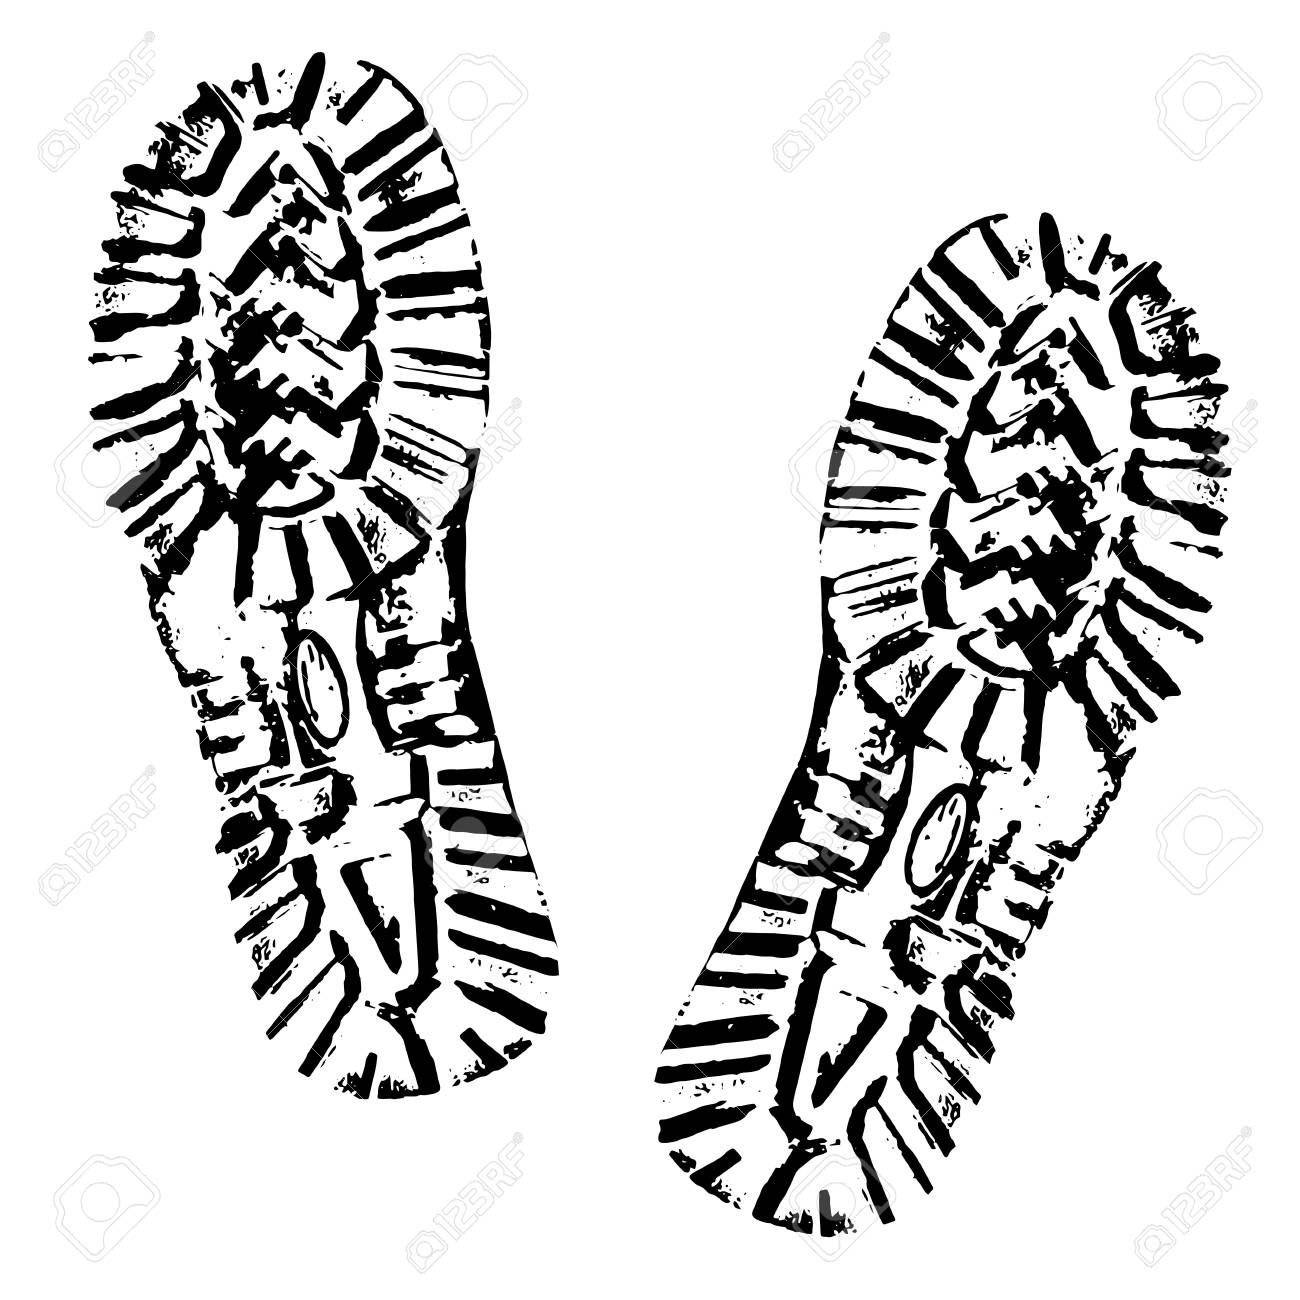 Human footprints shoe silhouette. Boot Imprint. Isolated on white background - 95806683